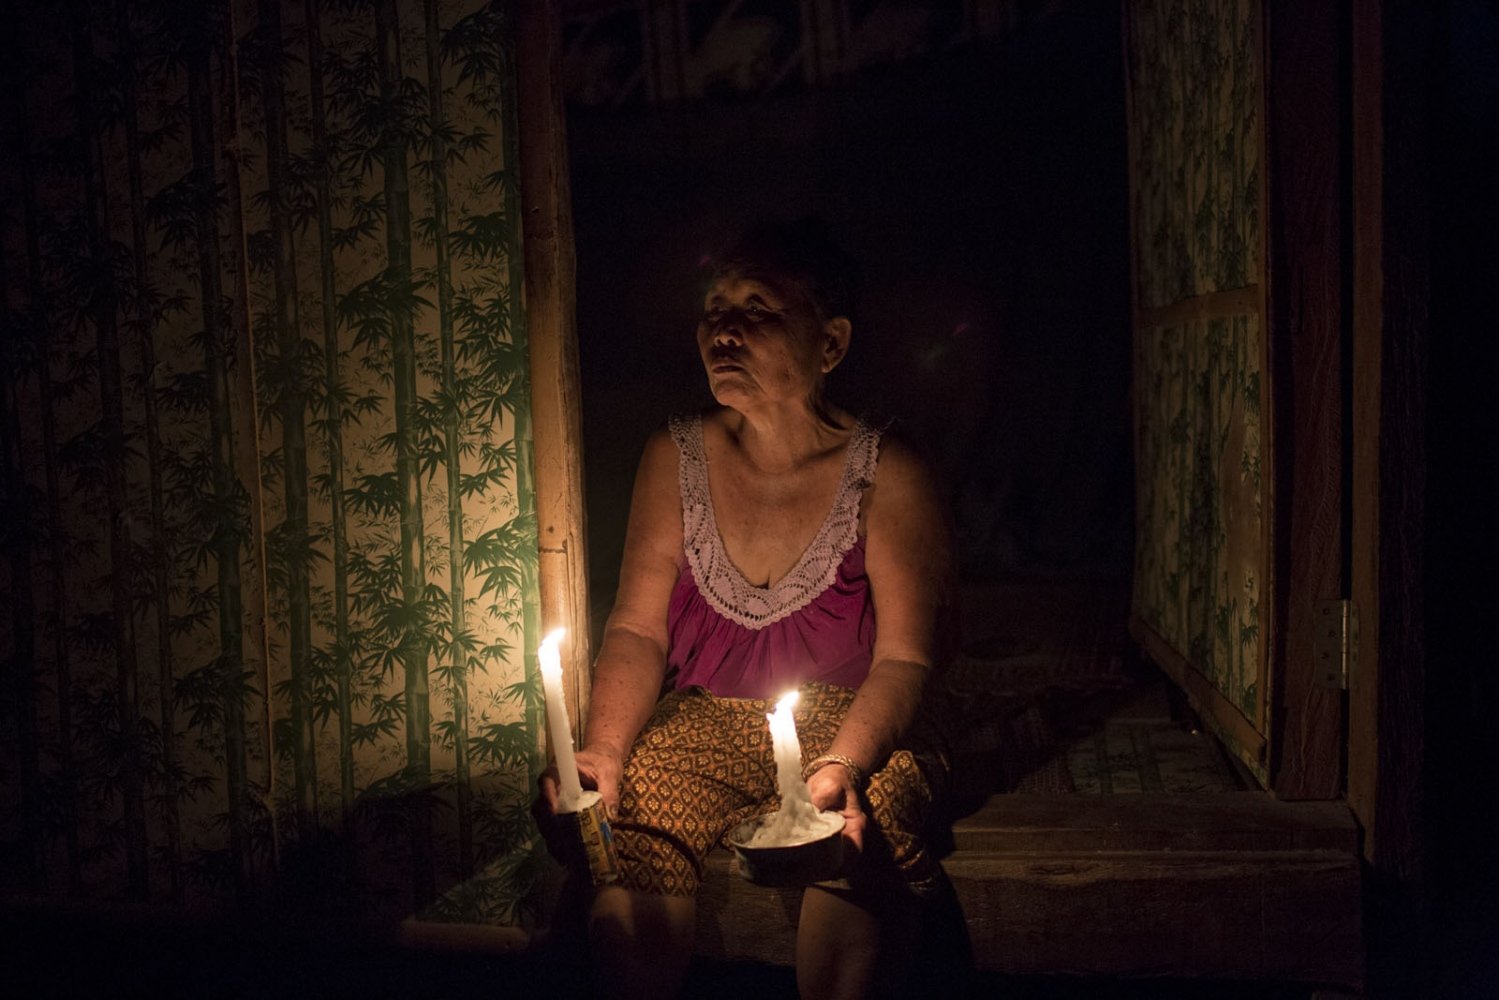 Rattana Seli, 66, sits in the entrance to her hut holding two candles. The village has no electricity so at night mostly candles are used.